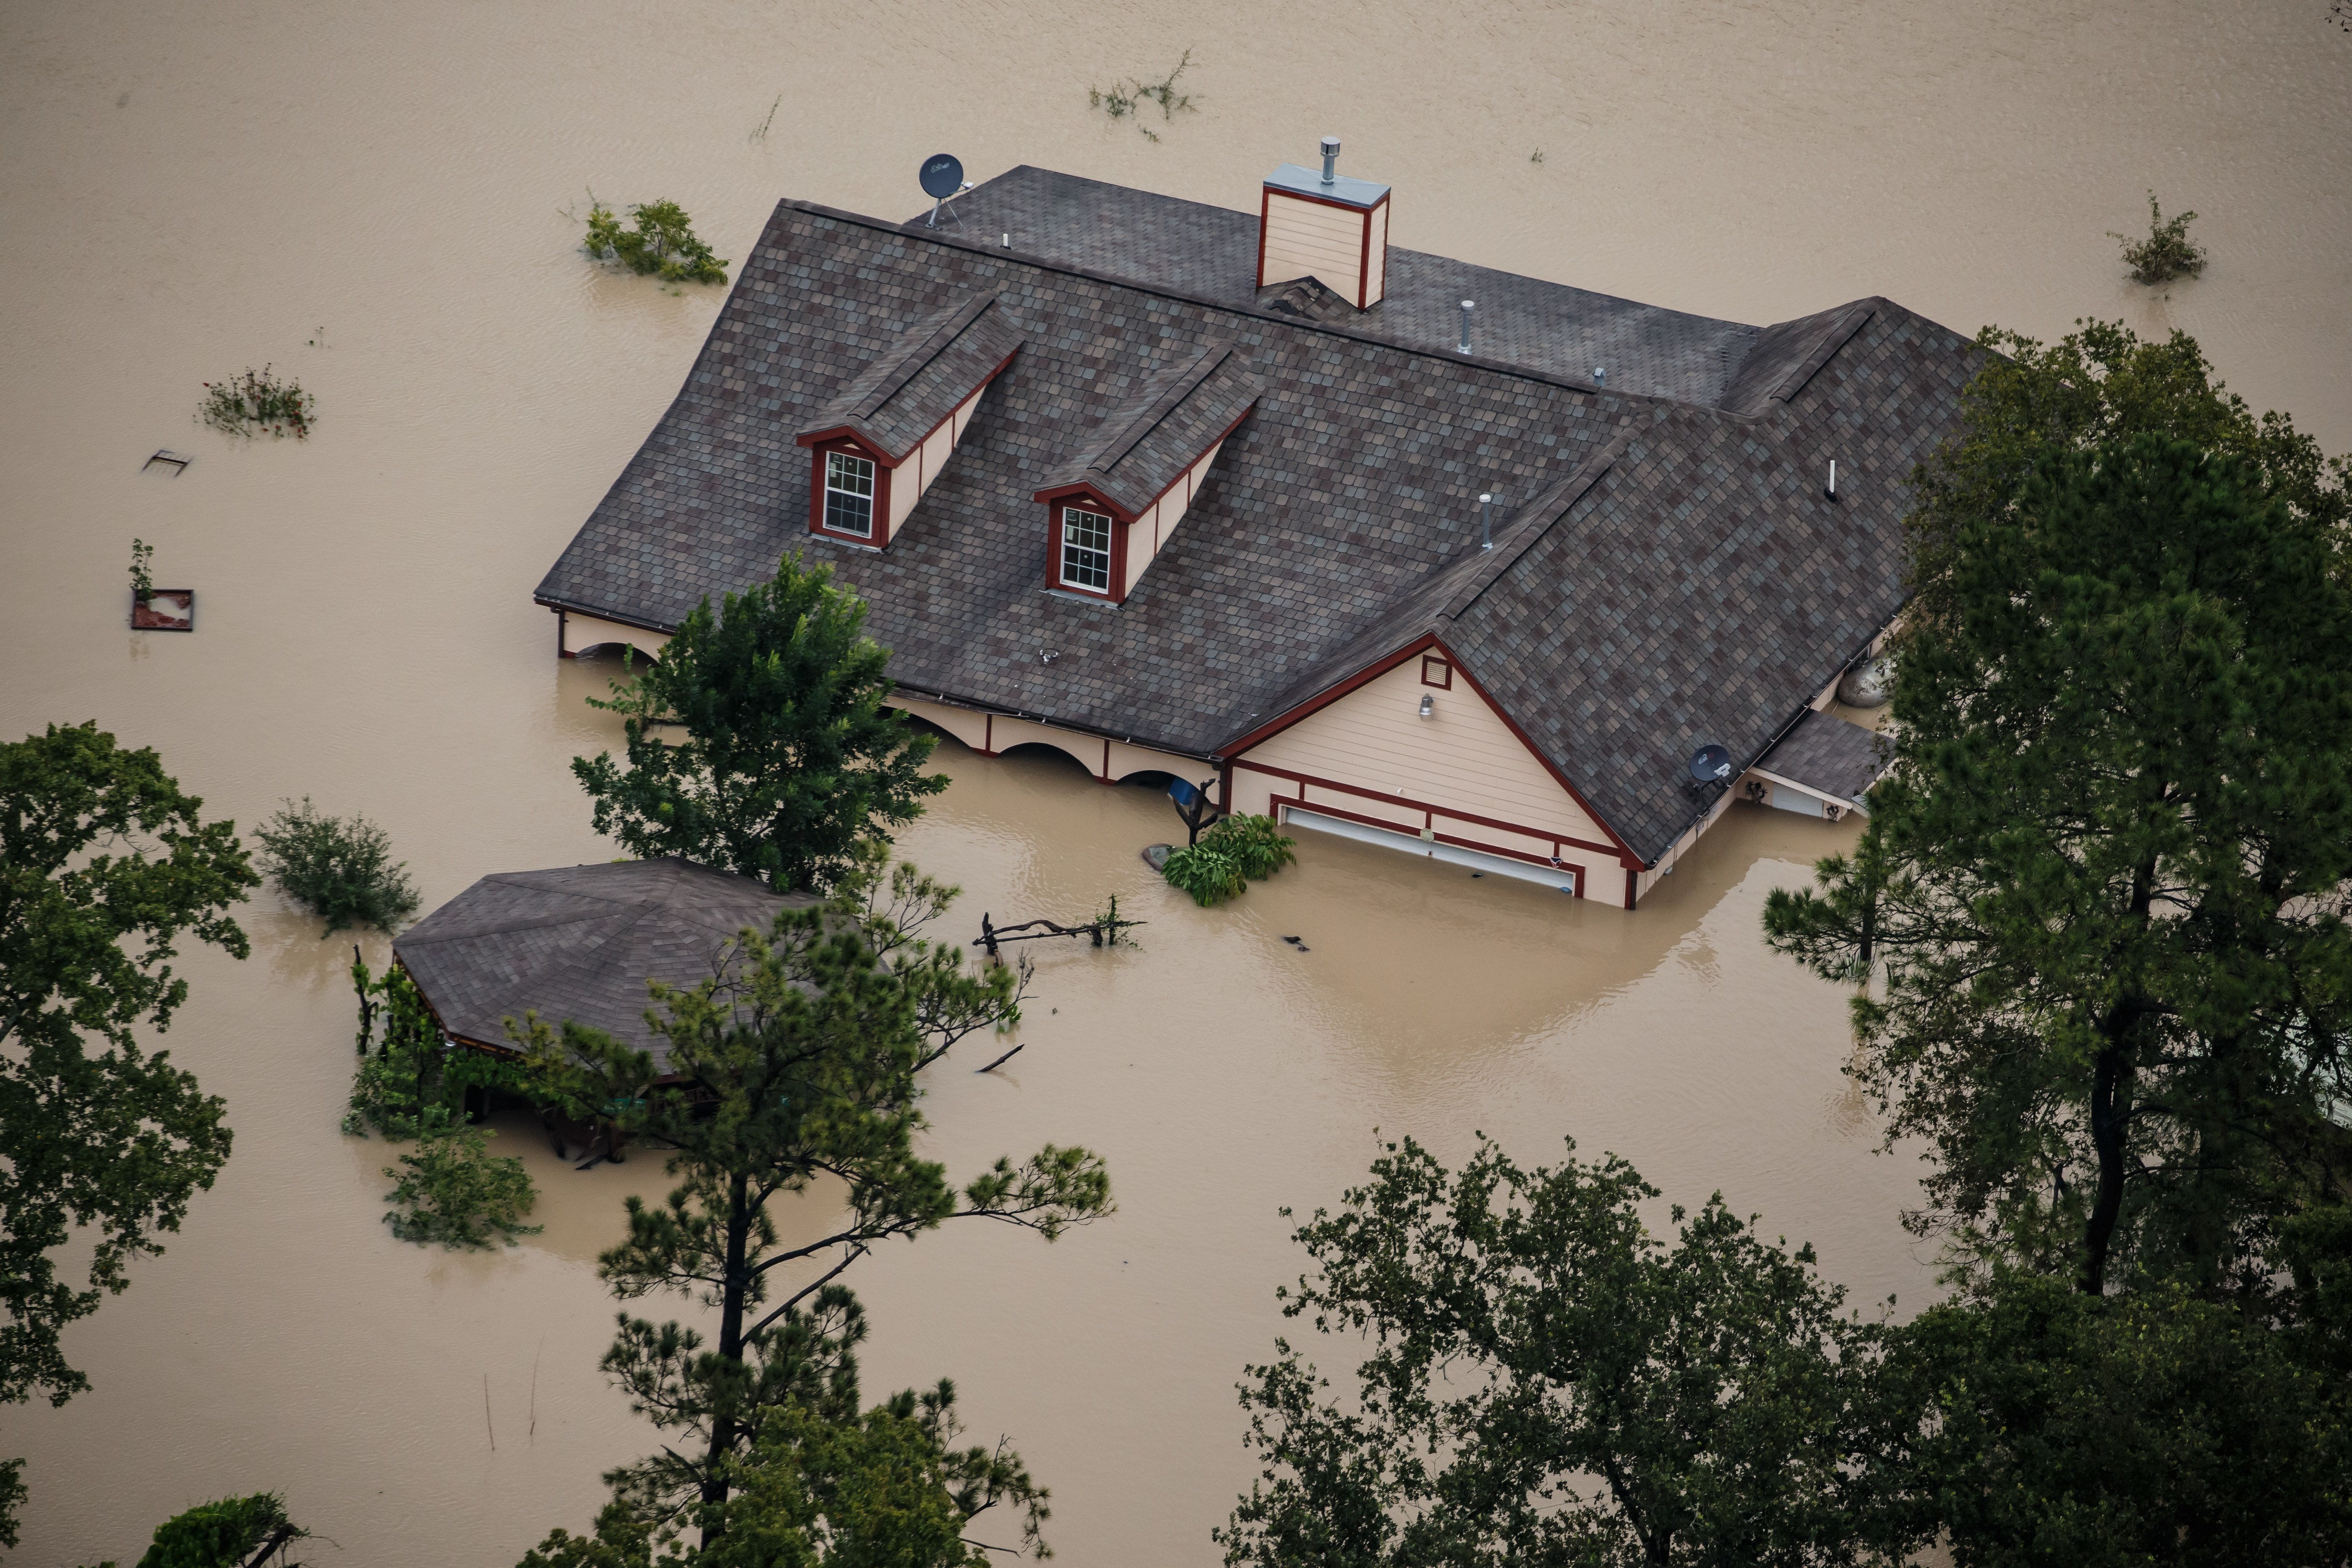 HOUSTON, TEXAS -- TUESDAY, AUGUST 29, 2017: A house sits completely submerged in flood water in the wake of Hurricane Harvey in Houston, Texas, on Aug. 29, 2017. (Marcus Yam / Los Angeles Times)